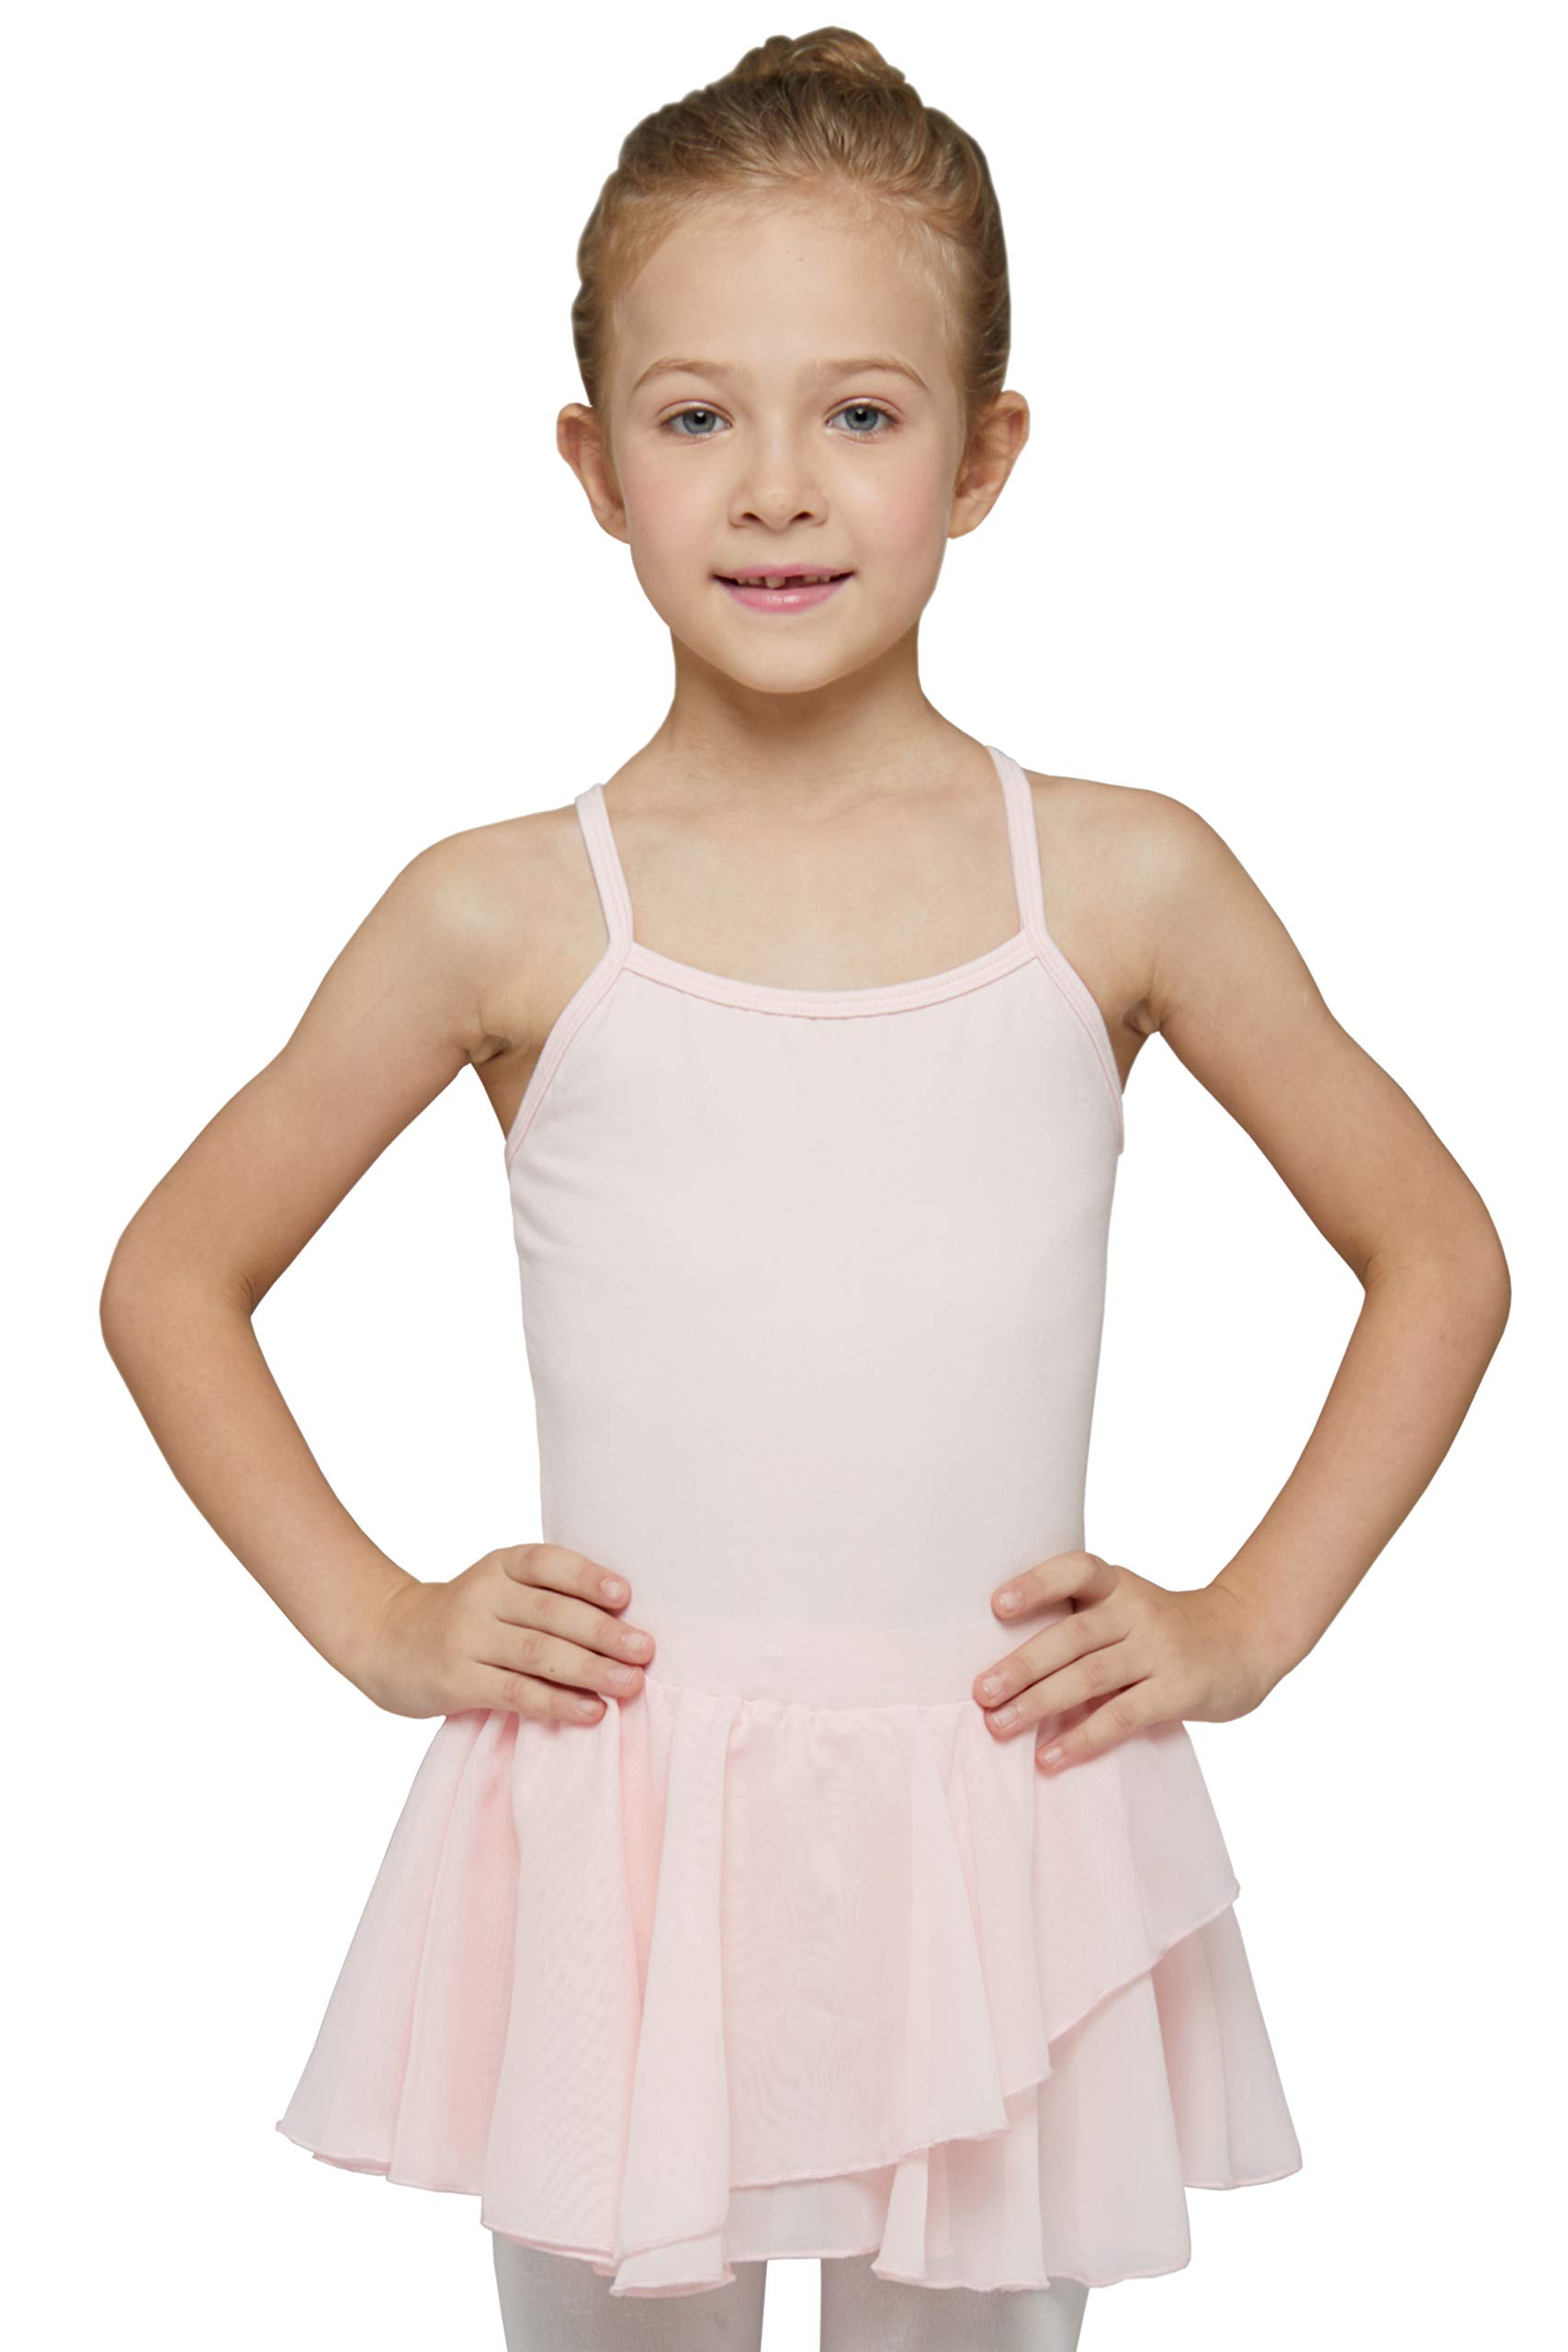 MdnMd Girls' Camisole Cotton Leotard Dress (2-4 / Toddler, Ballet Pink) by MdnMd